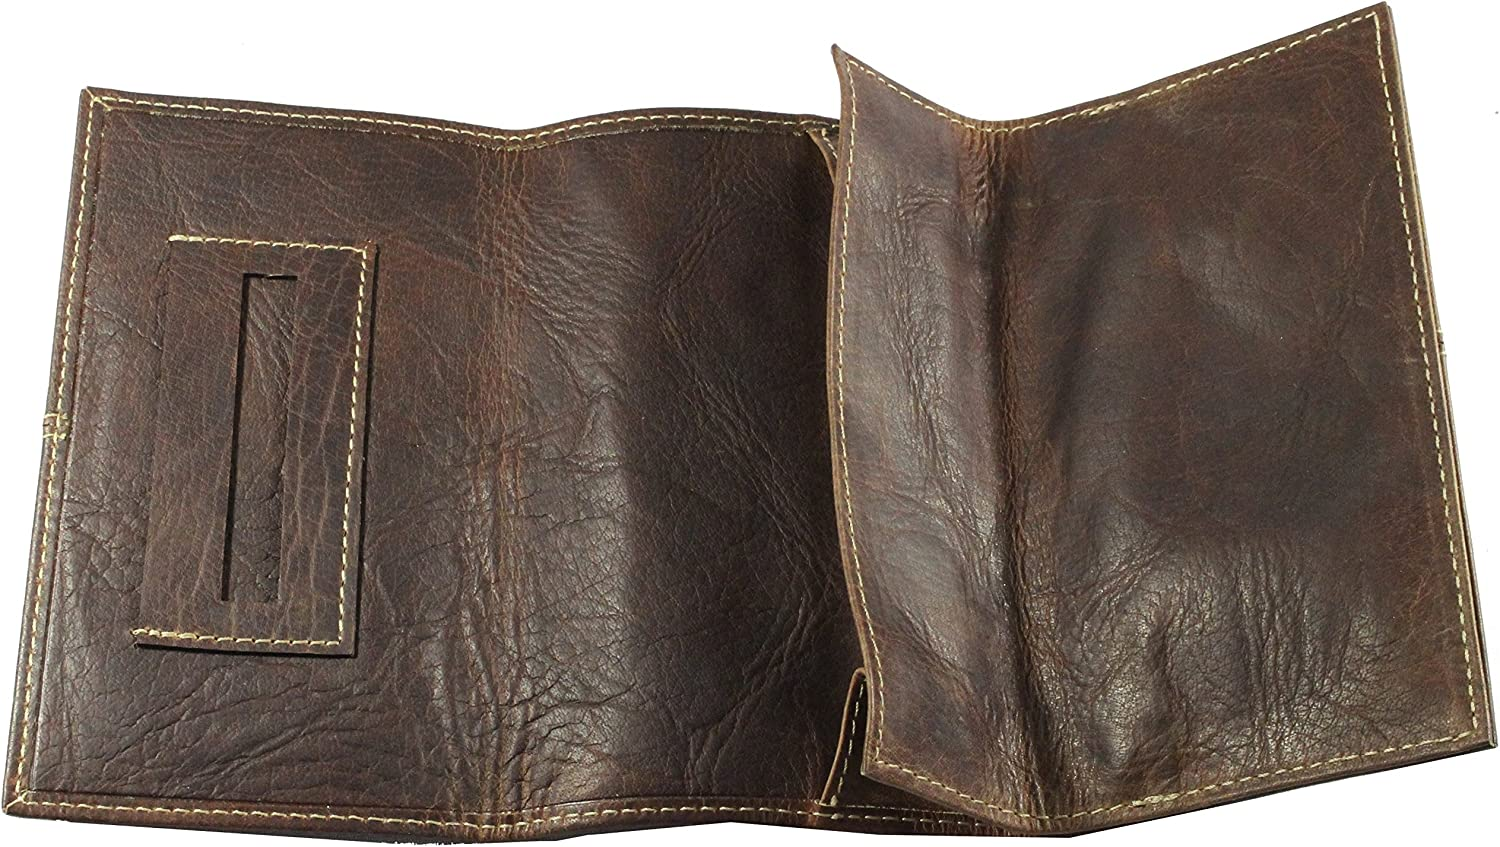 Wallet Buffalo Travel Pouch Saddle and Gold Bison Leather Pouch Tobacco Pouch Rolling Case